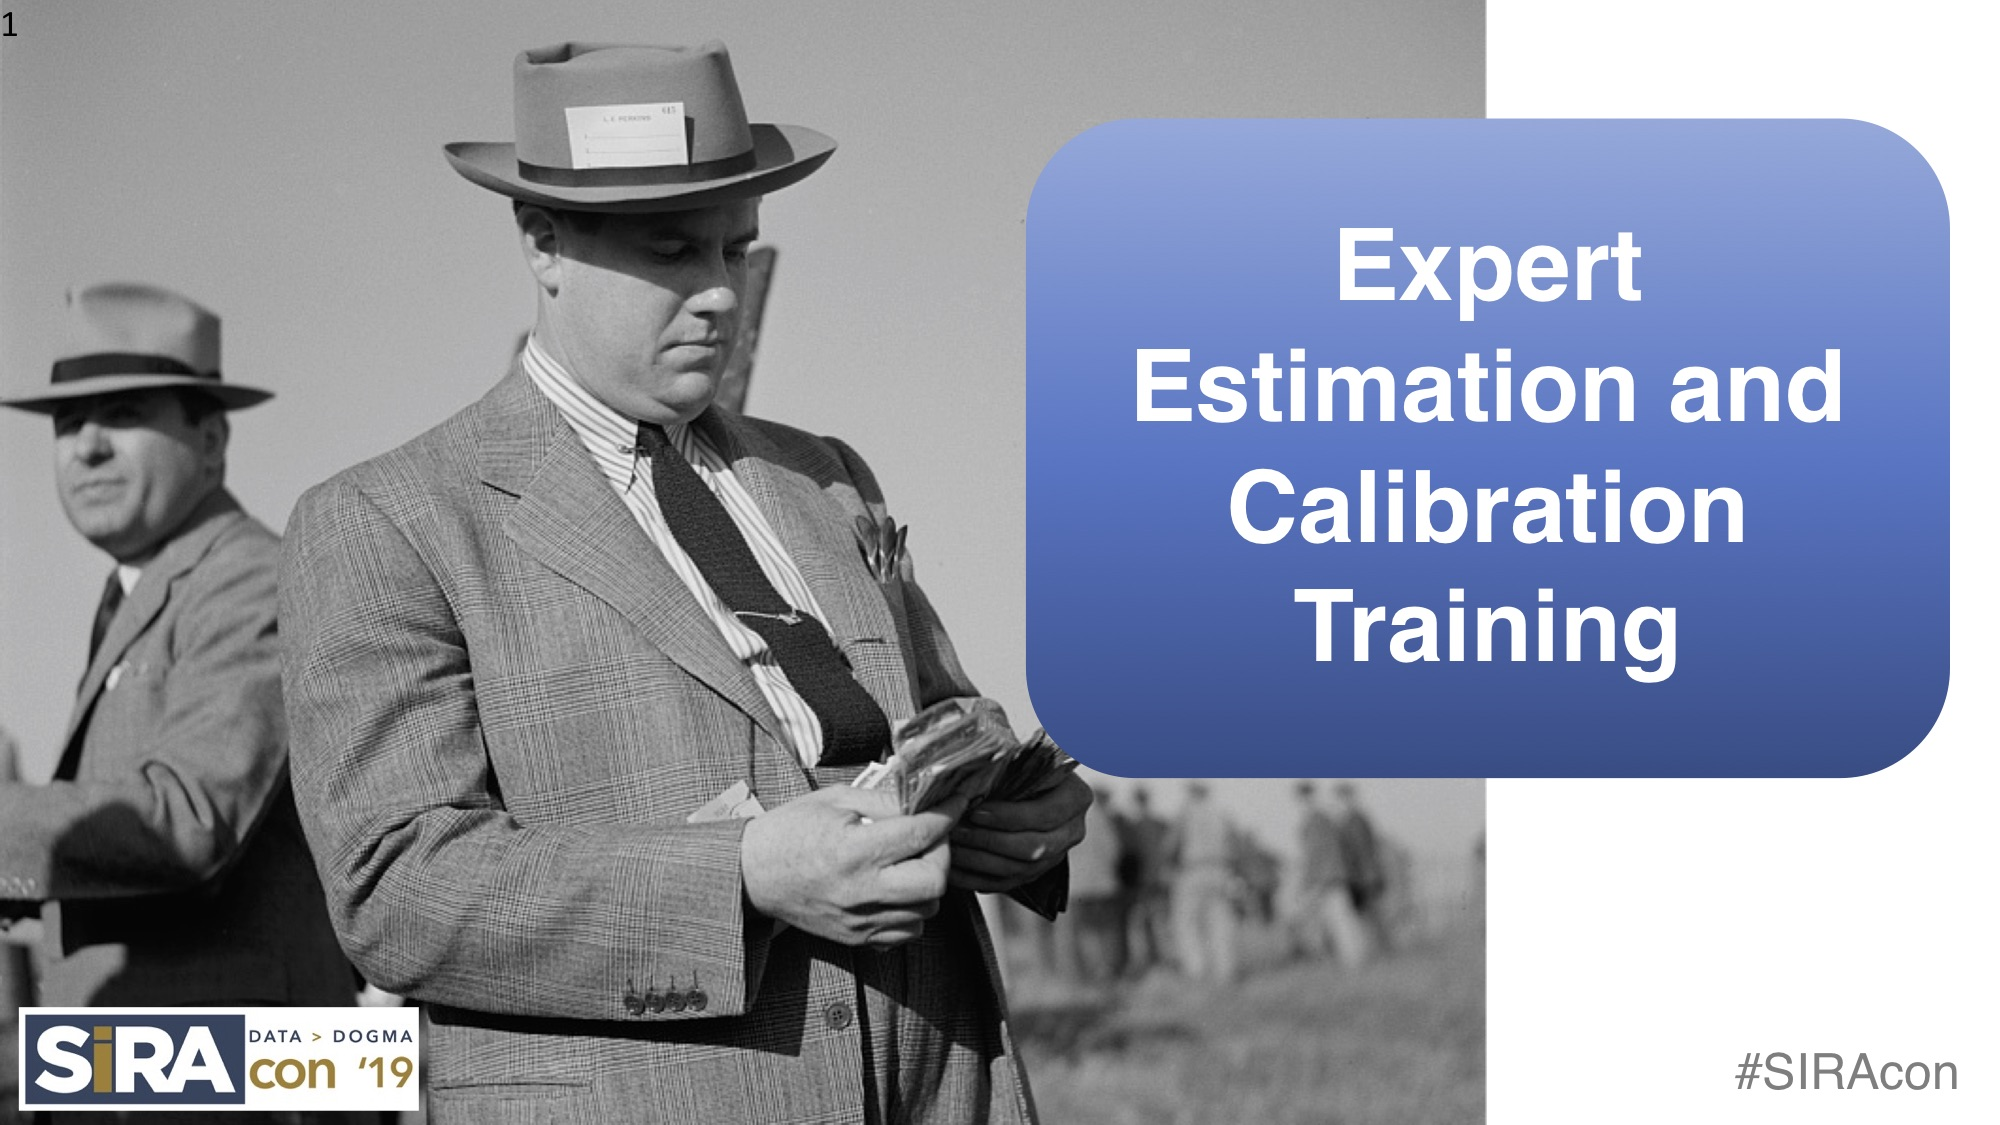 Expert Estimation and Calibration Training - SIRAcon 2019.jpg